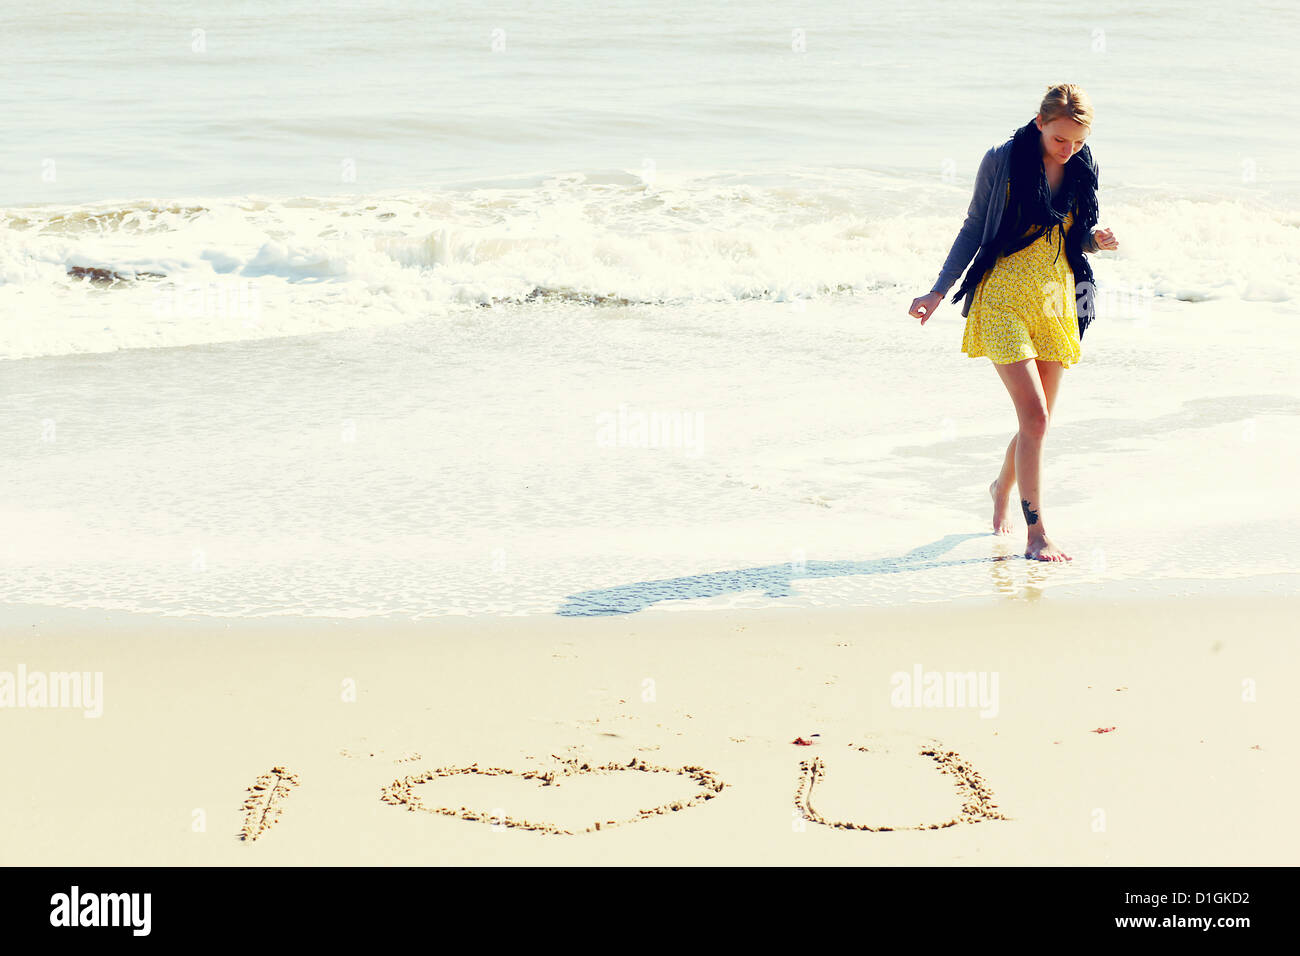 Young woman on a sunny beach with 'I Love you' written in the sand in front of her. - Stock Image